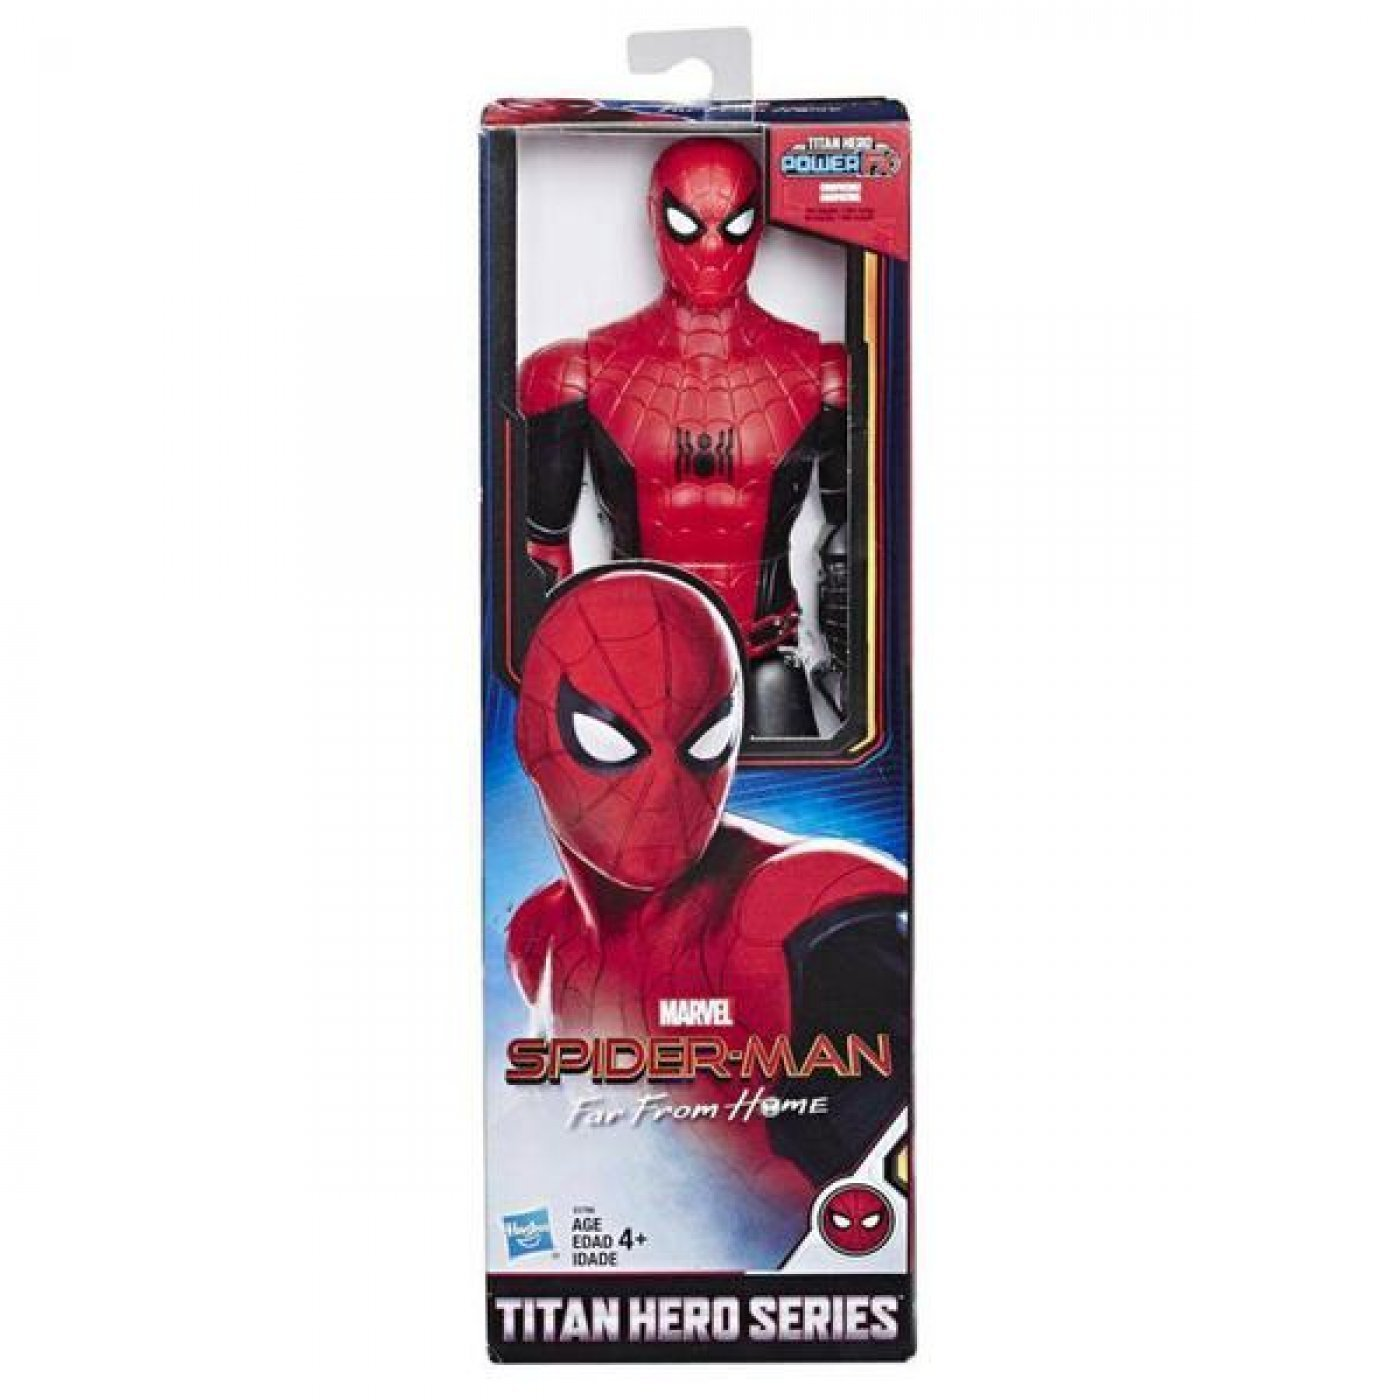 Spiderman Far From Home MARVEL Titan Hero